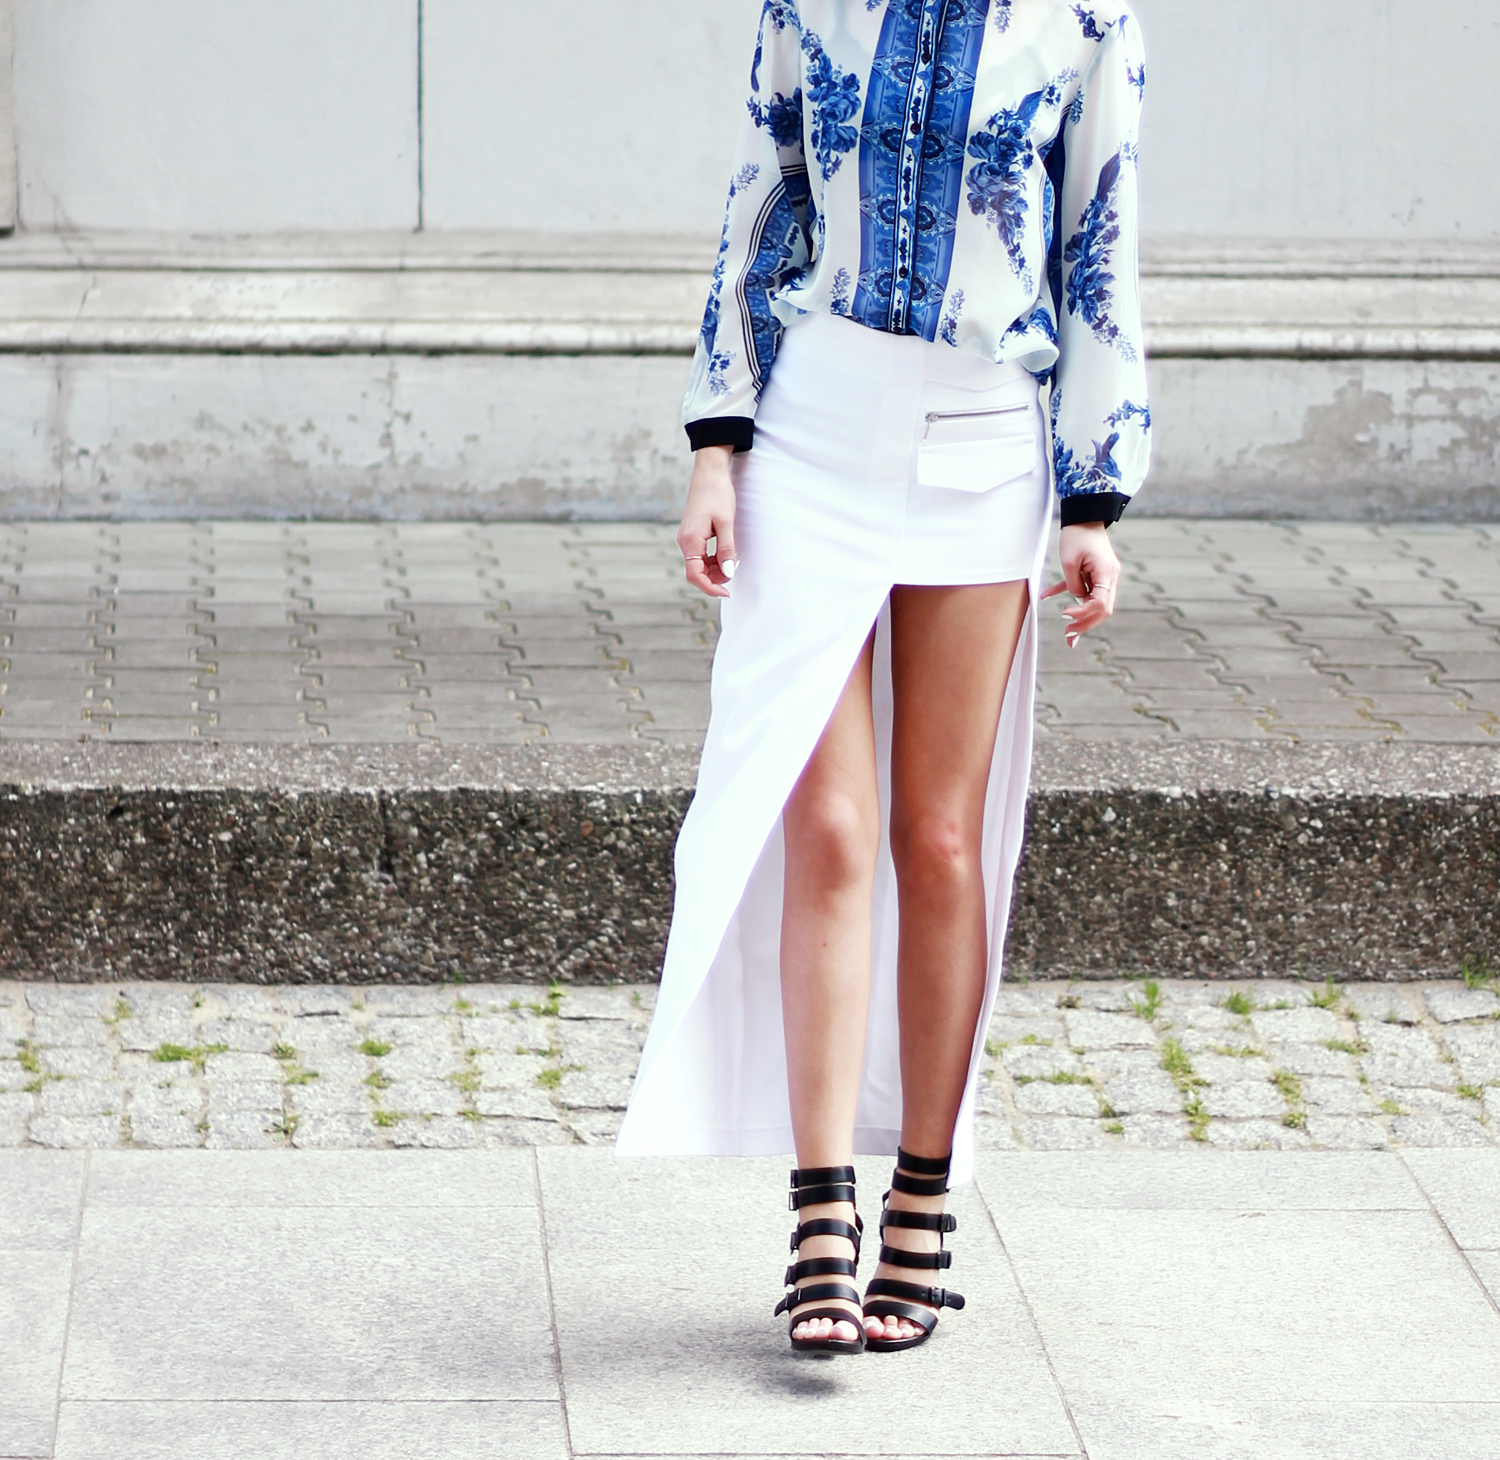 style blogger ootd look tumblr girl fashion trends lookbook chic mohito  topshop prada outfit what to